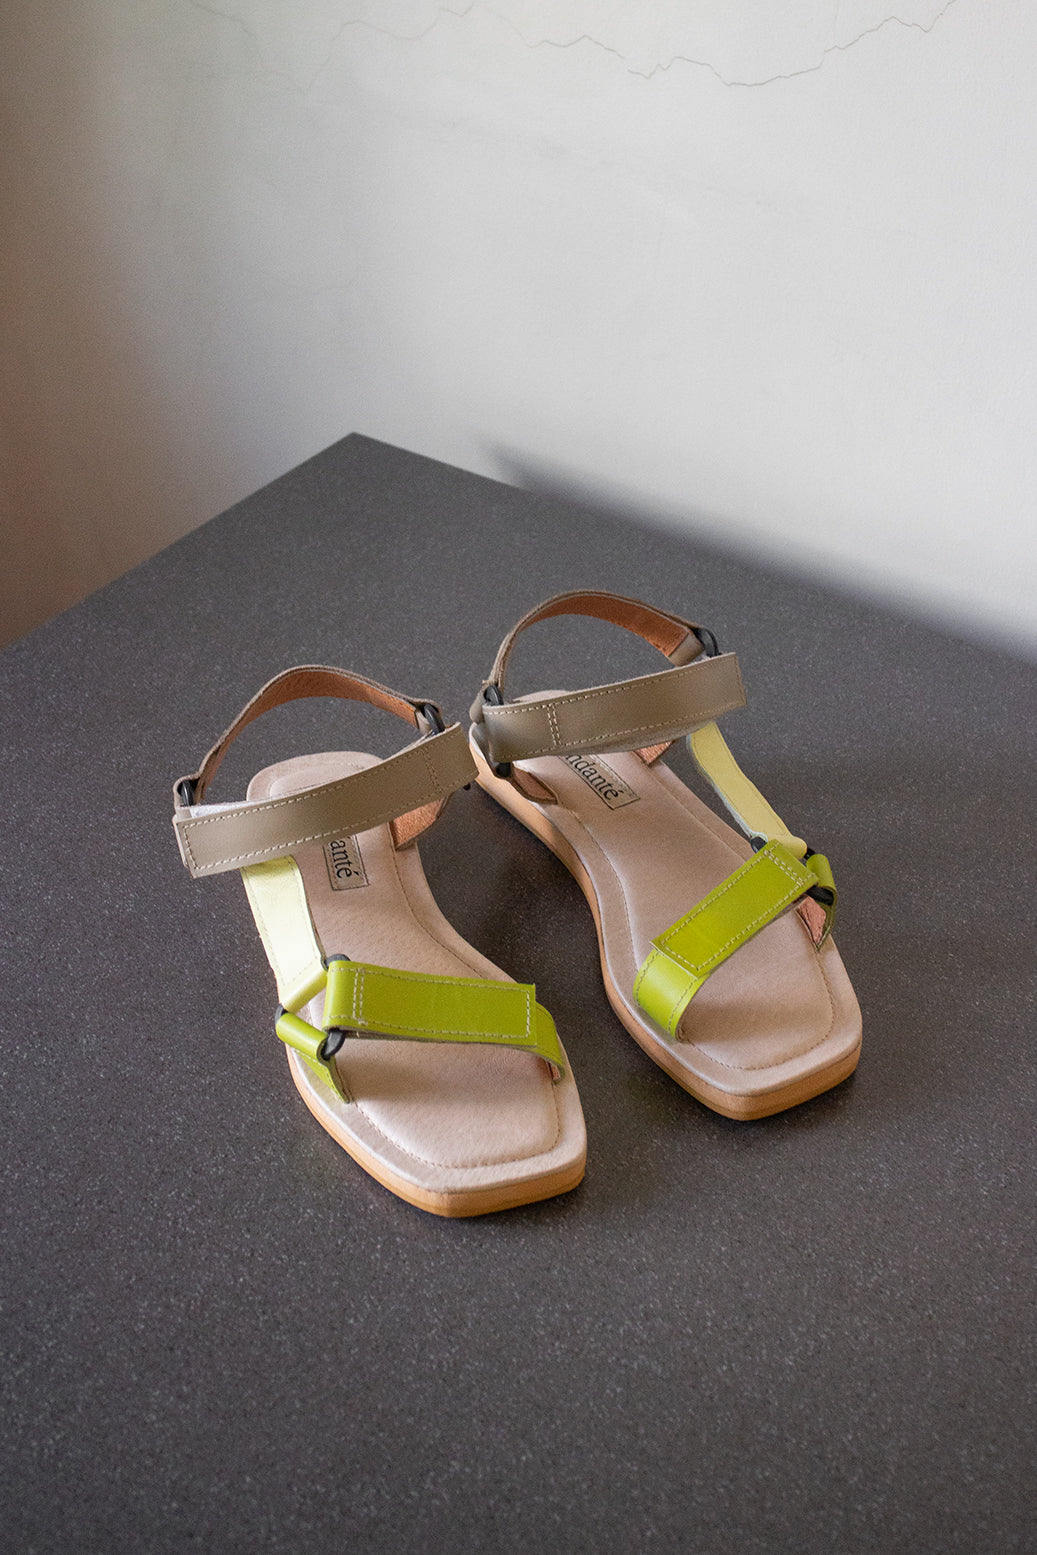 The Sportif Sandal in Mojito - andanté, sandals - loafers, sandals leather footwear